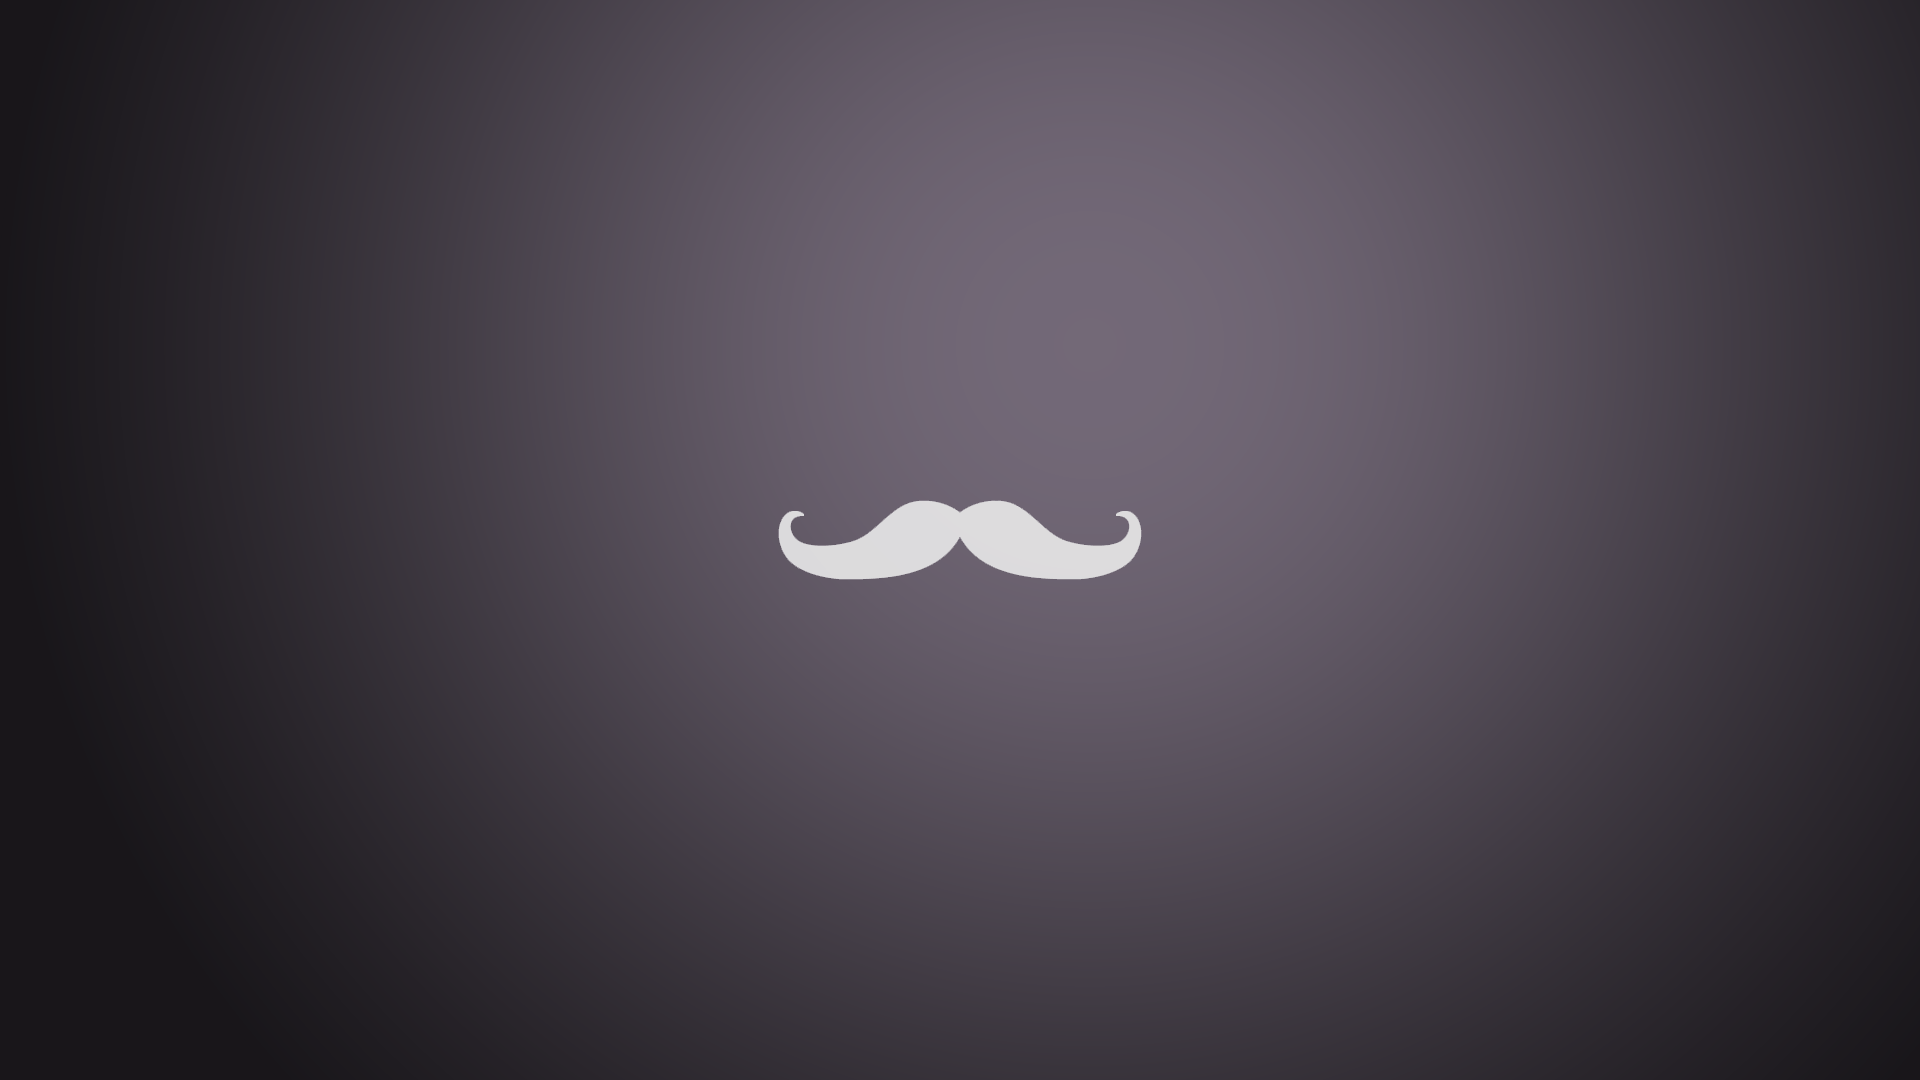 Weekly Wallpaper Put Moustaches On Your Desktop In Honour Of